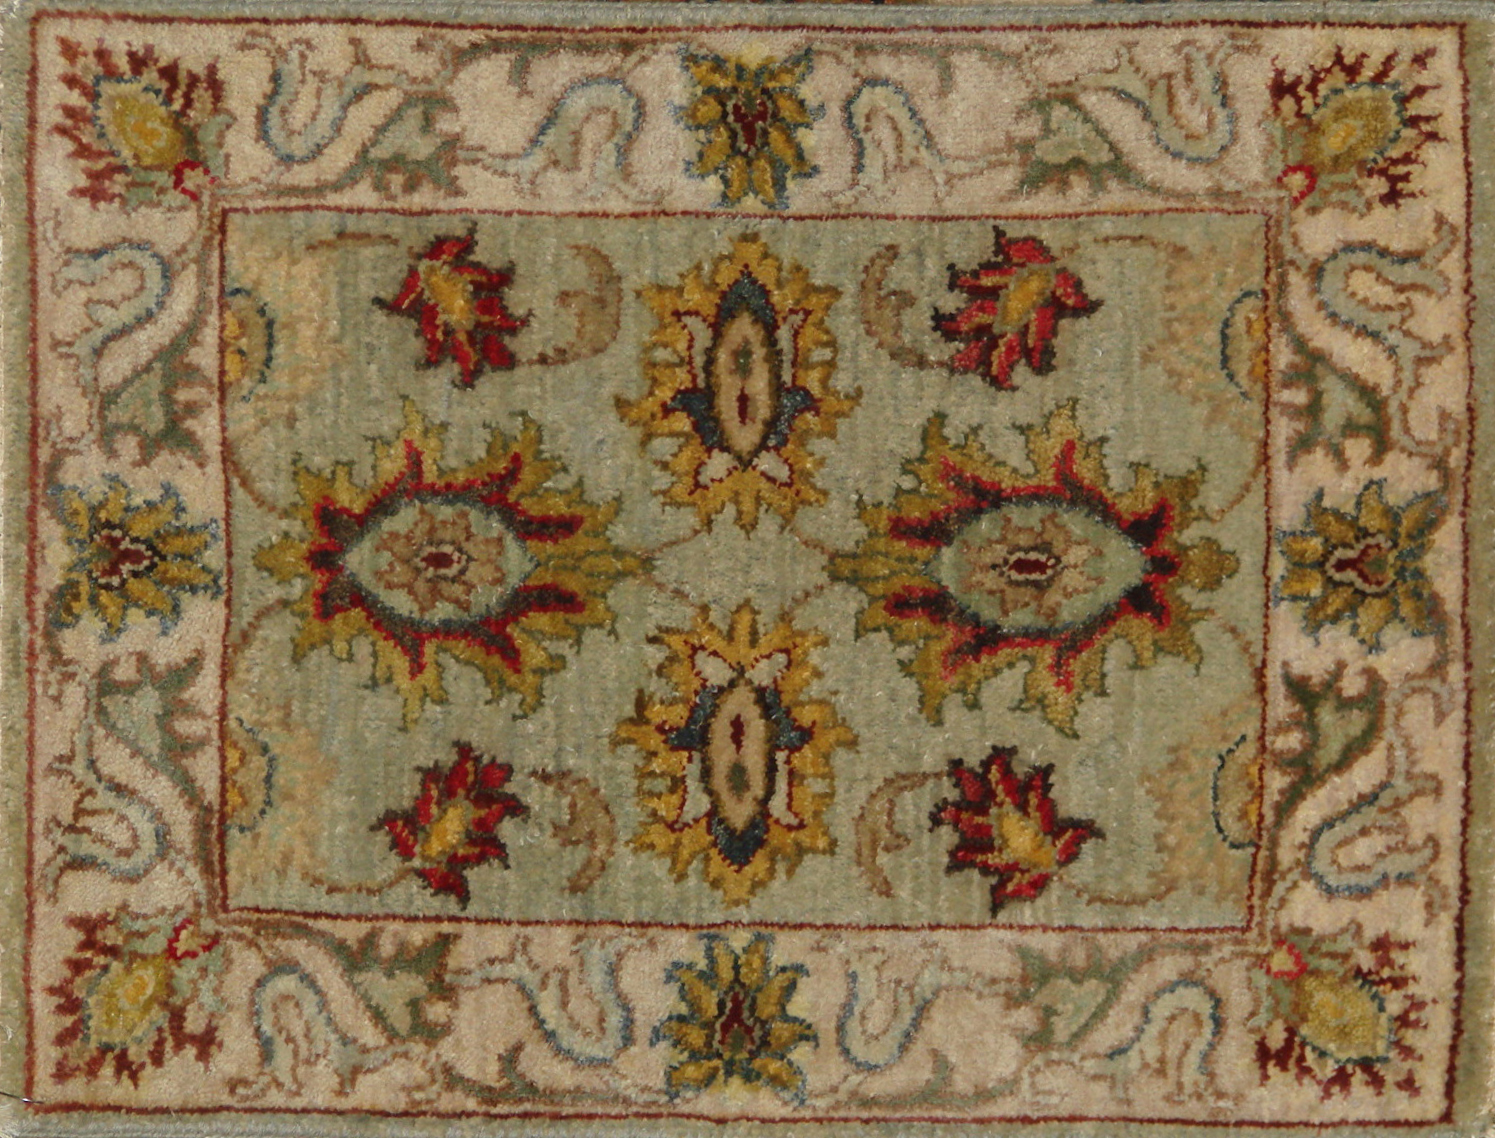 1.6X2 & SMALLER Traditional Hand Knotted Wool Area Rug - MR20727